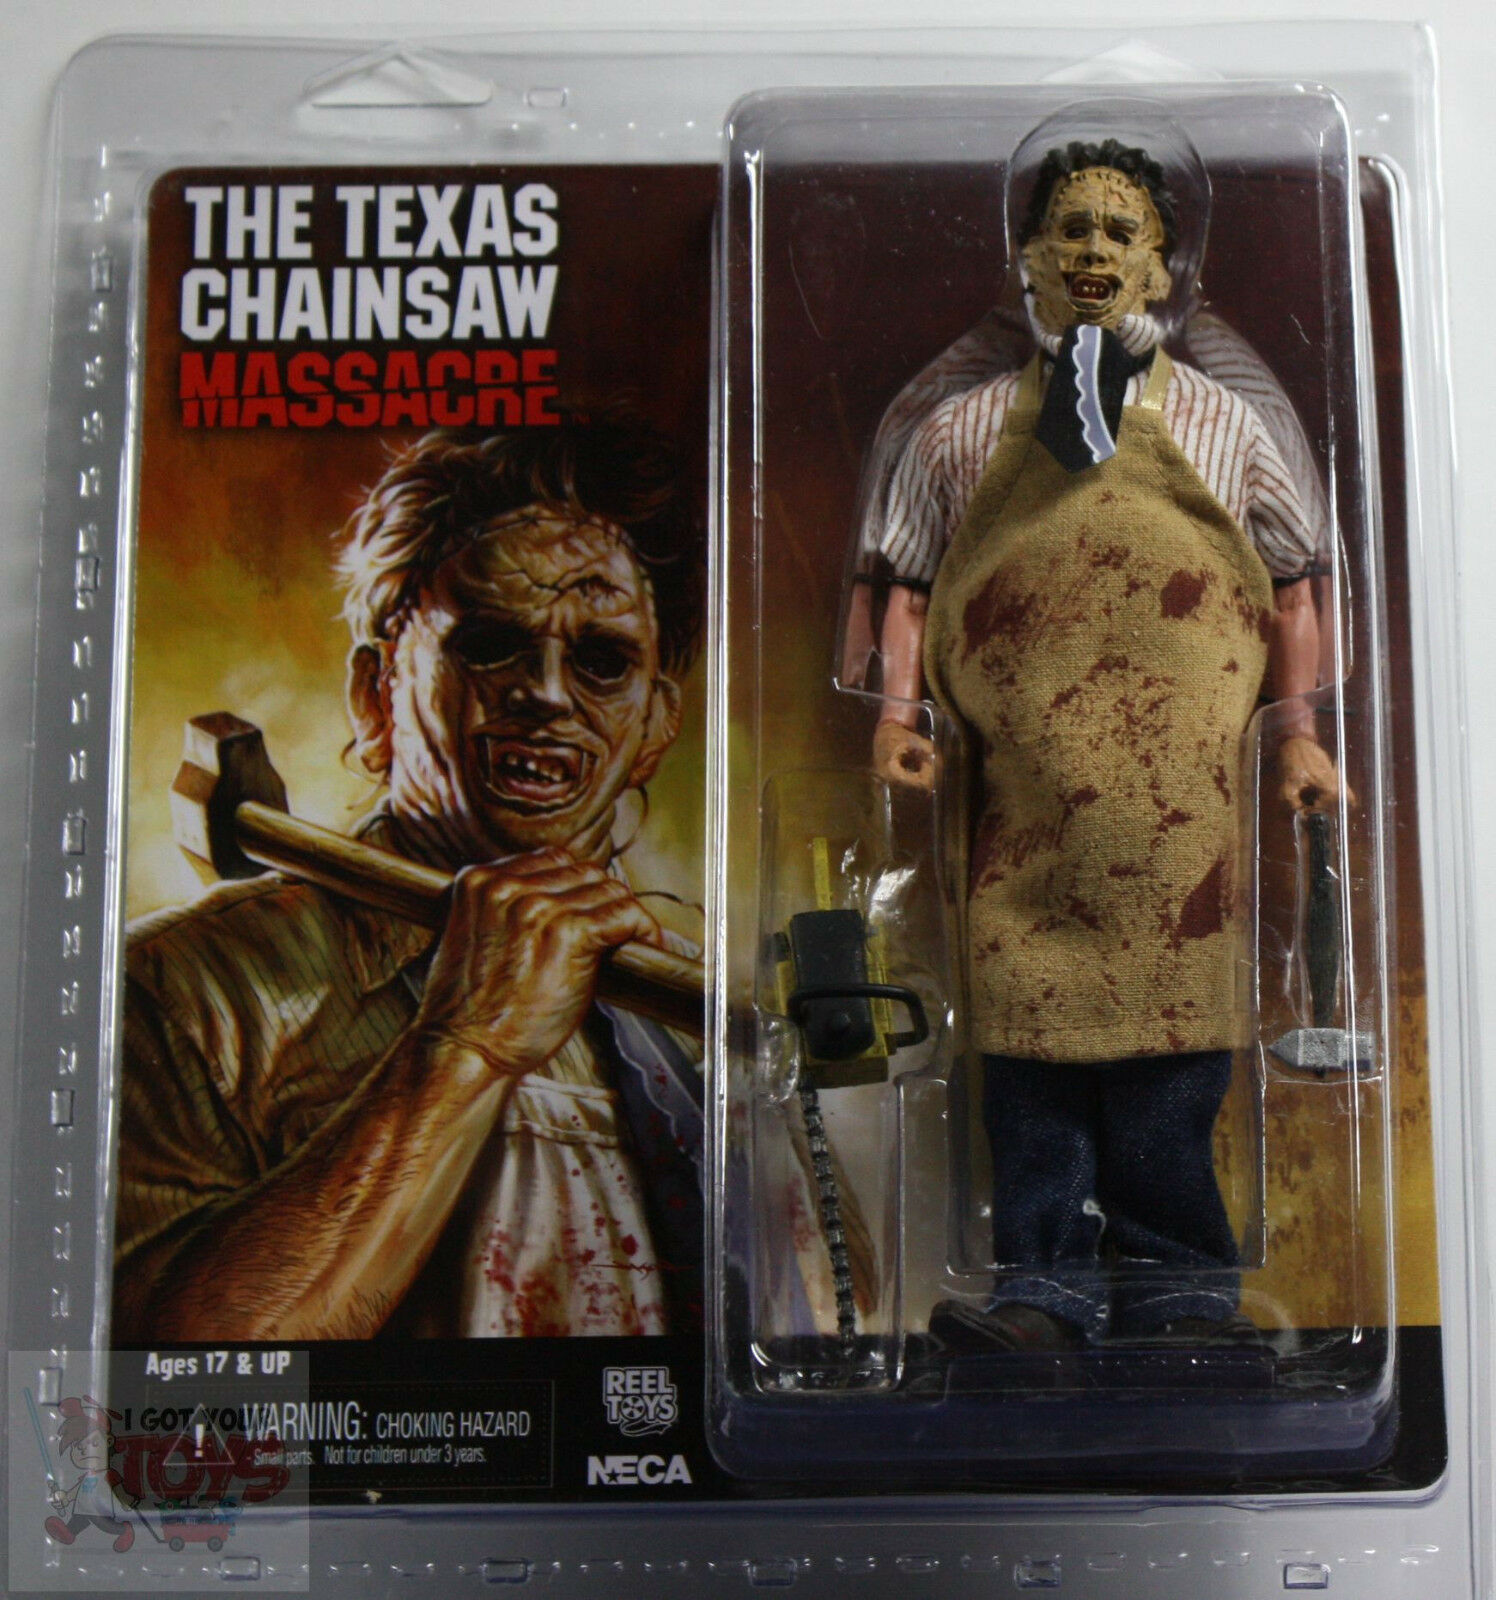 NECA LEATHERFACE CLOTHED Texas Chainsaw Massacre RETRO 8